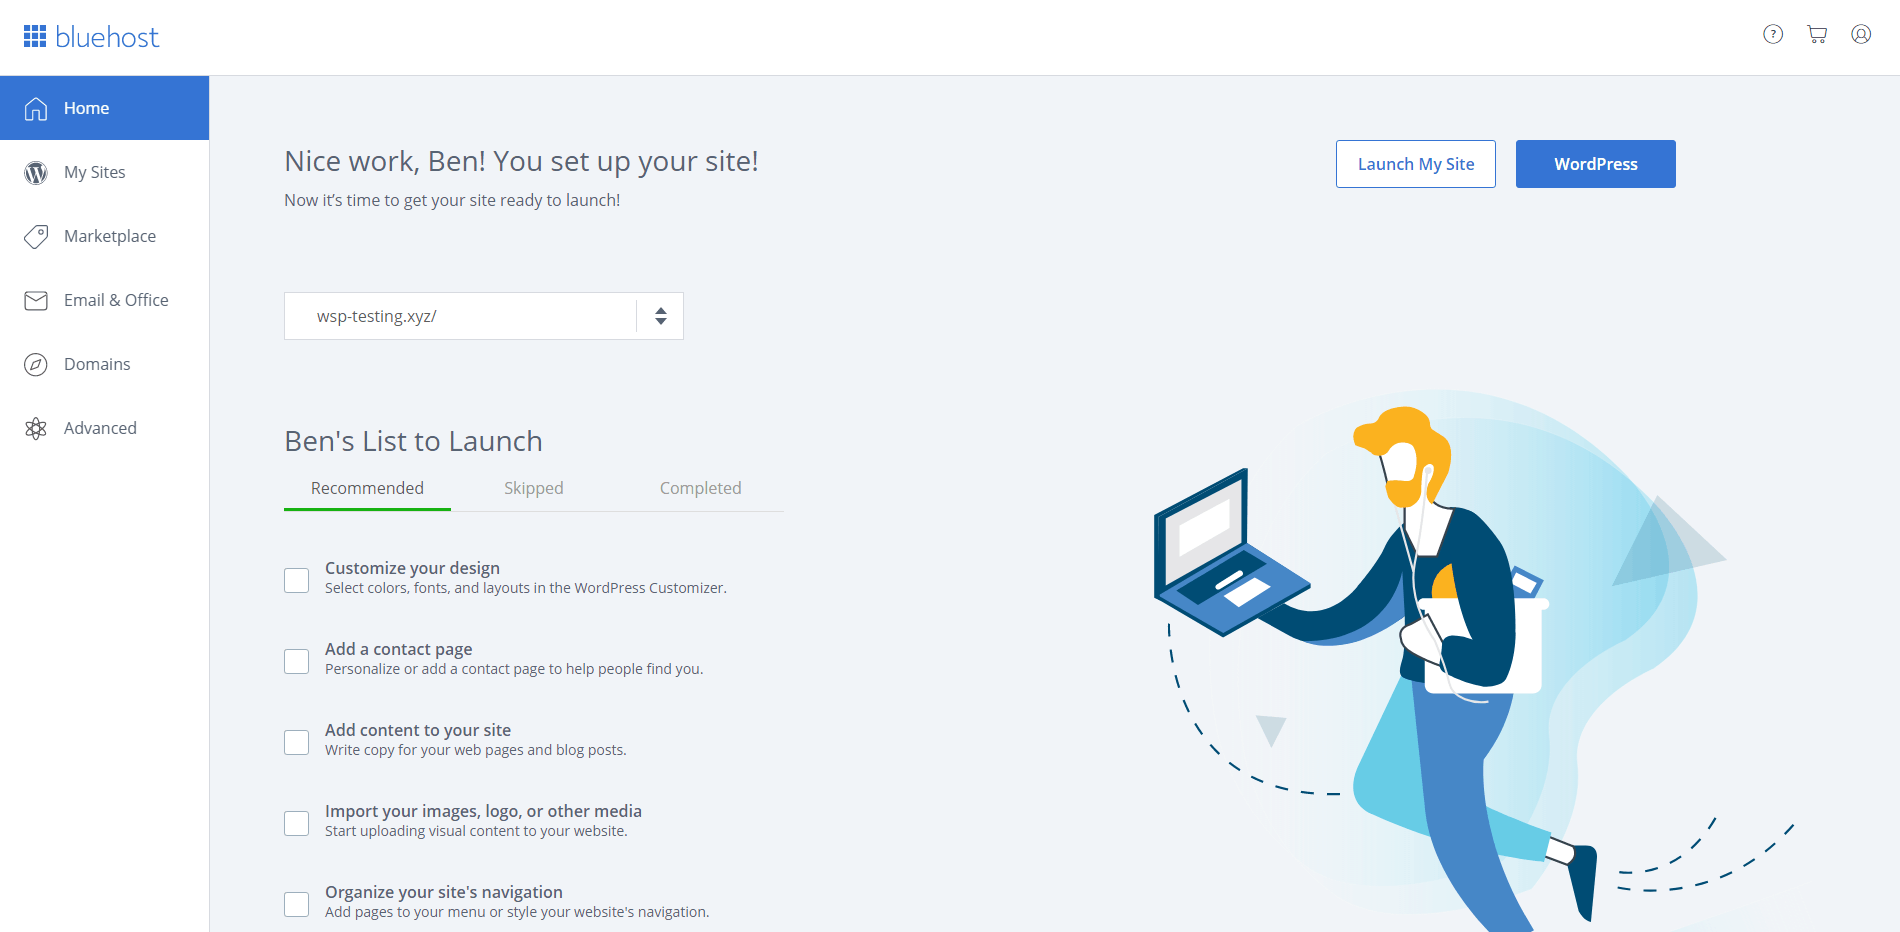 How to Connect Your Domain + Install WordPress on Bluehost-image6